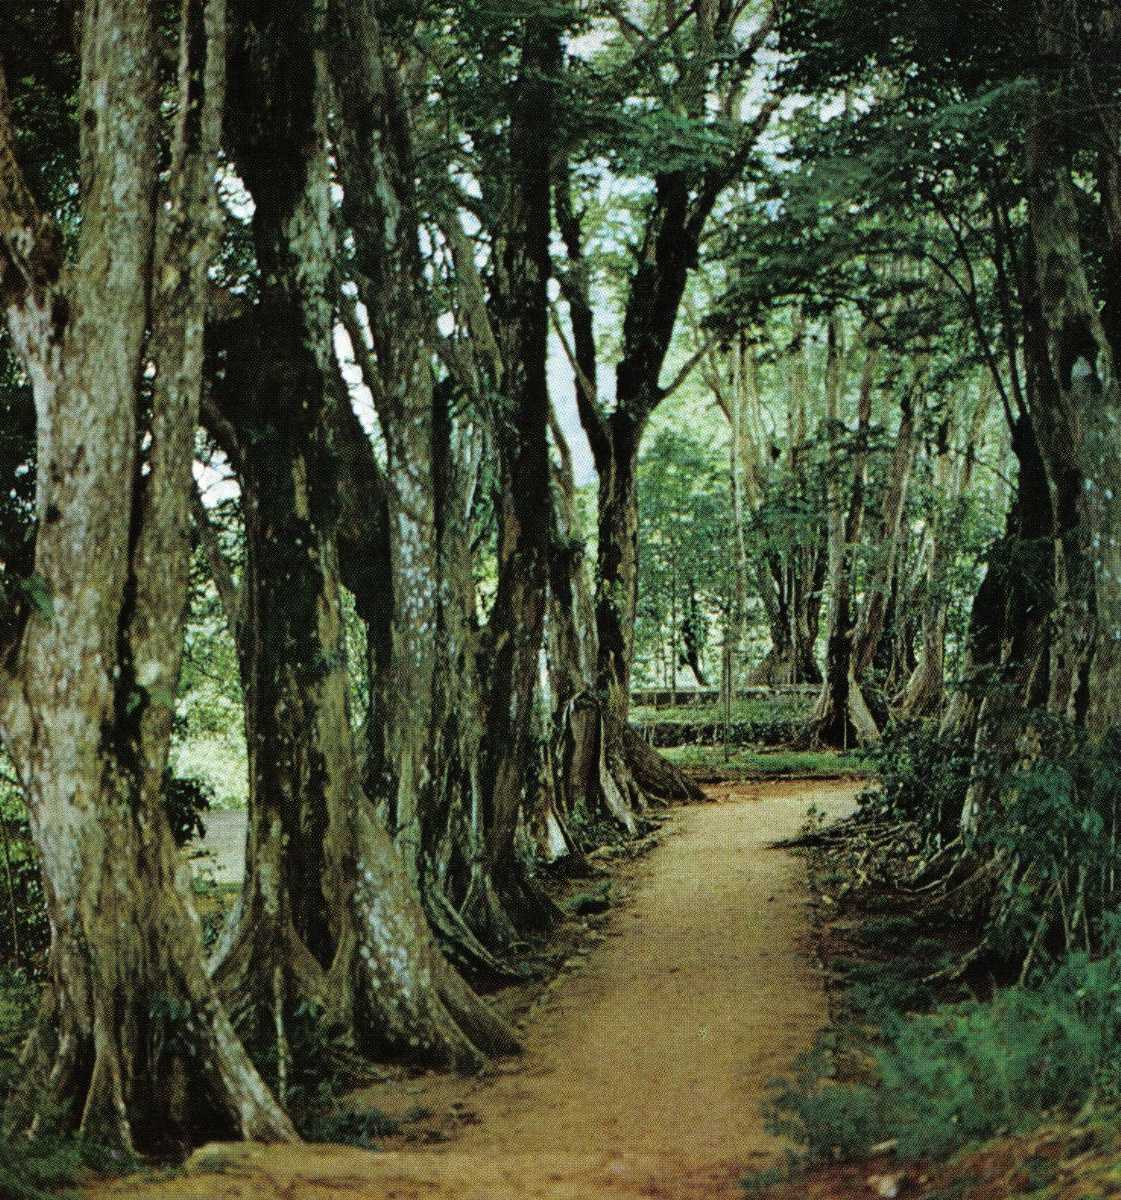 Trail in Morne Seychellois National Park, Seychelles